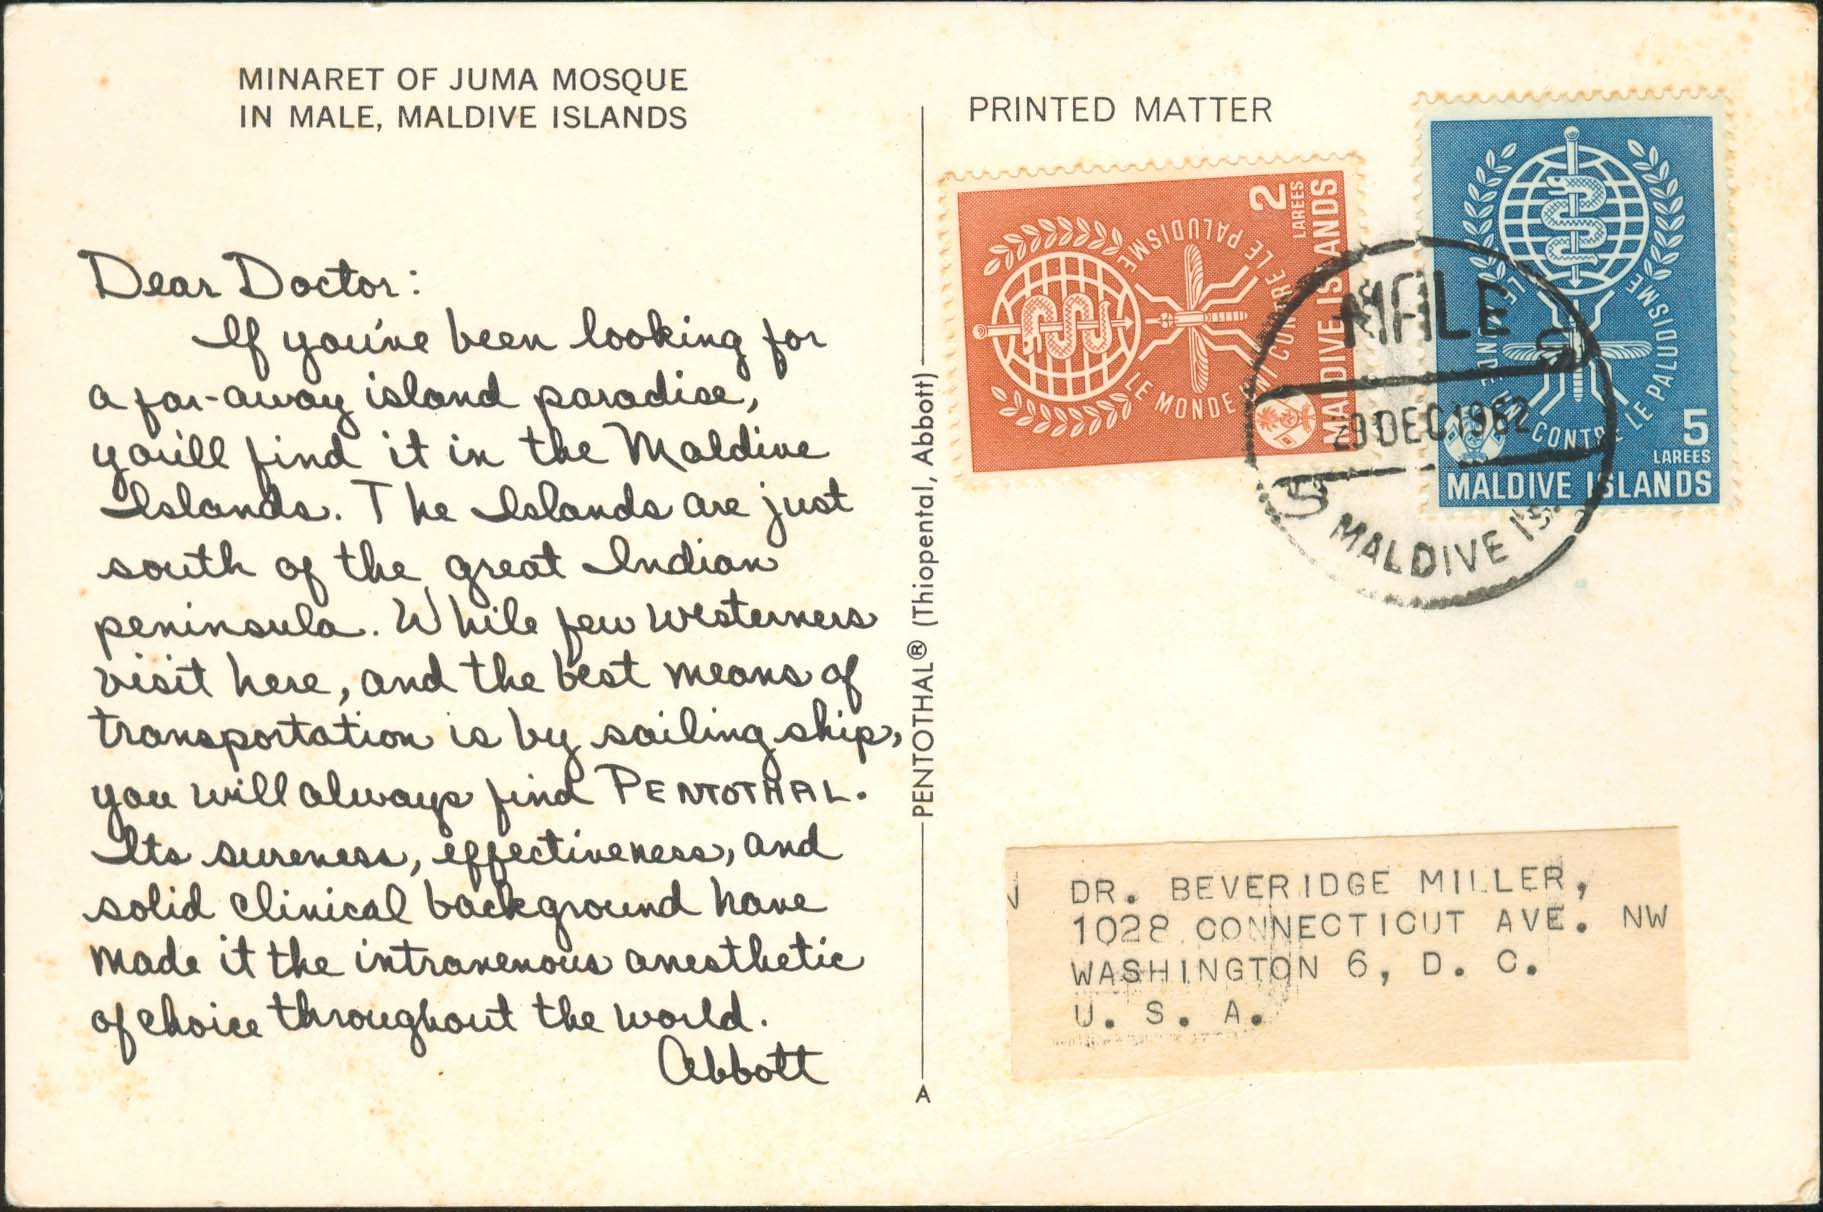 Dear Doctor Postcard - Type A - United States - 1962, Dec 29